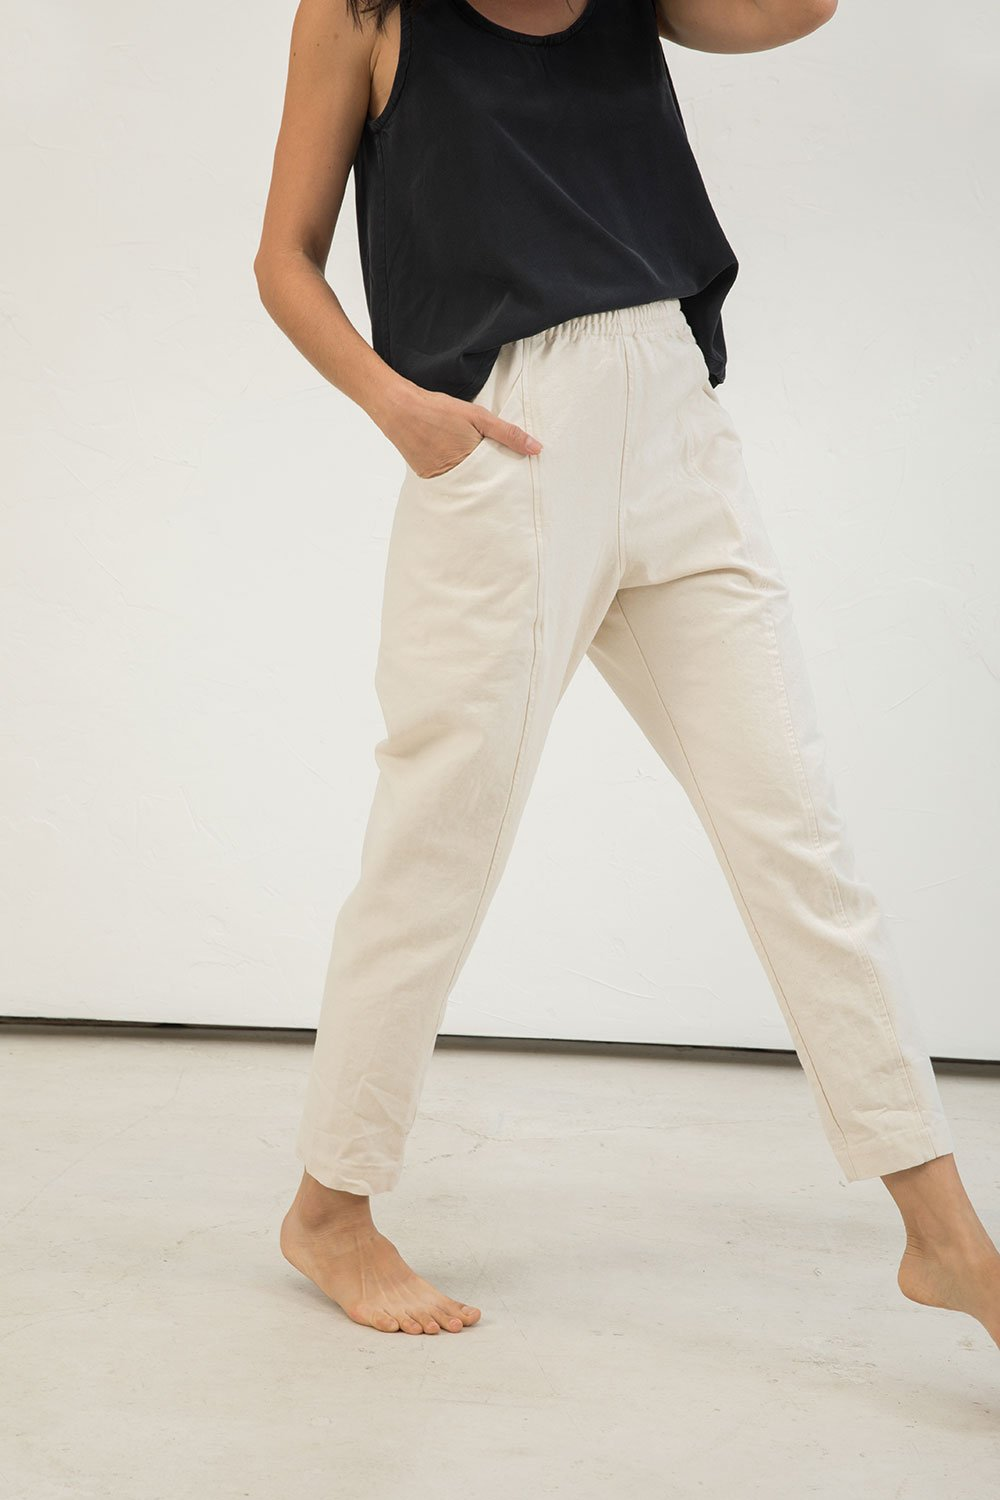 Clyde Work Pant in Cotton Canvas Natural - Lisa-4 Regular